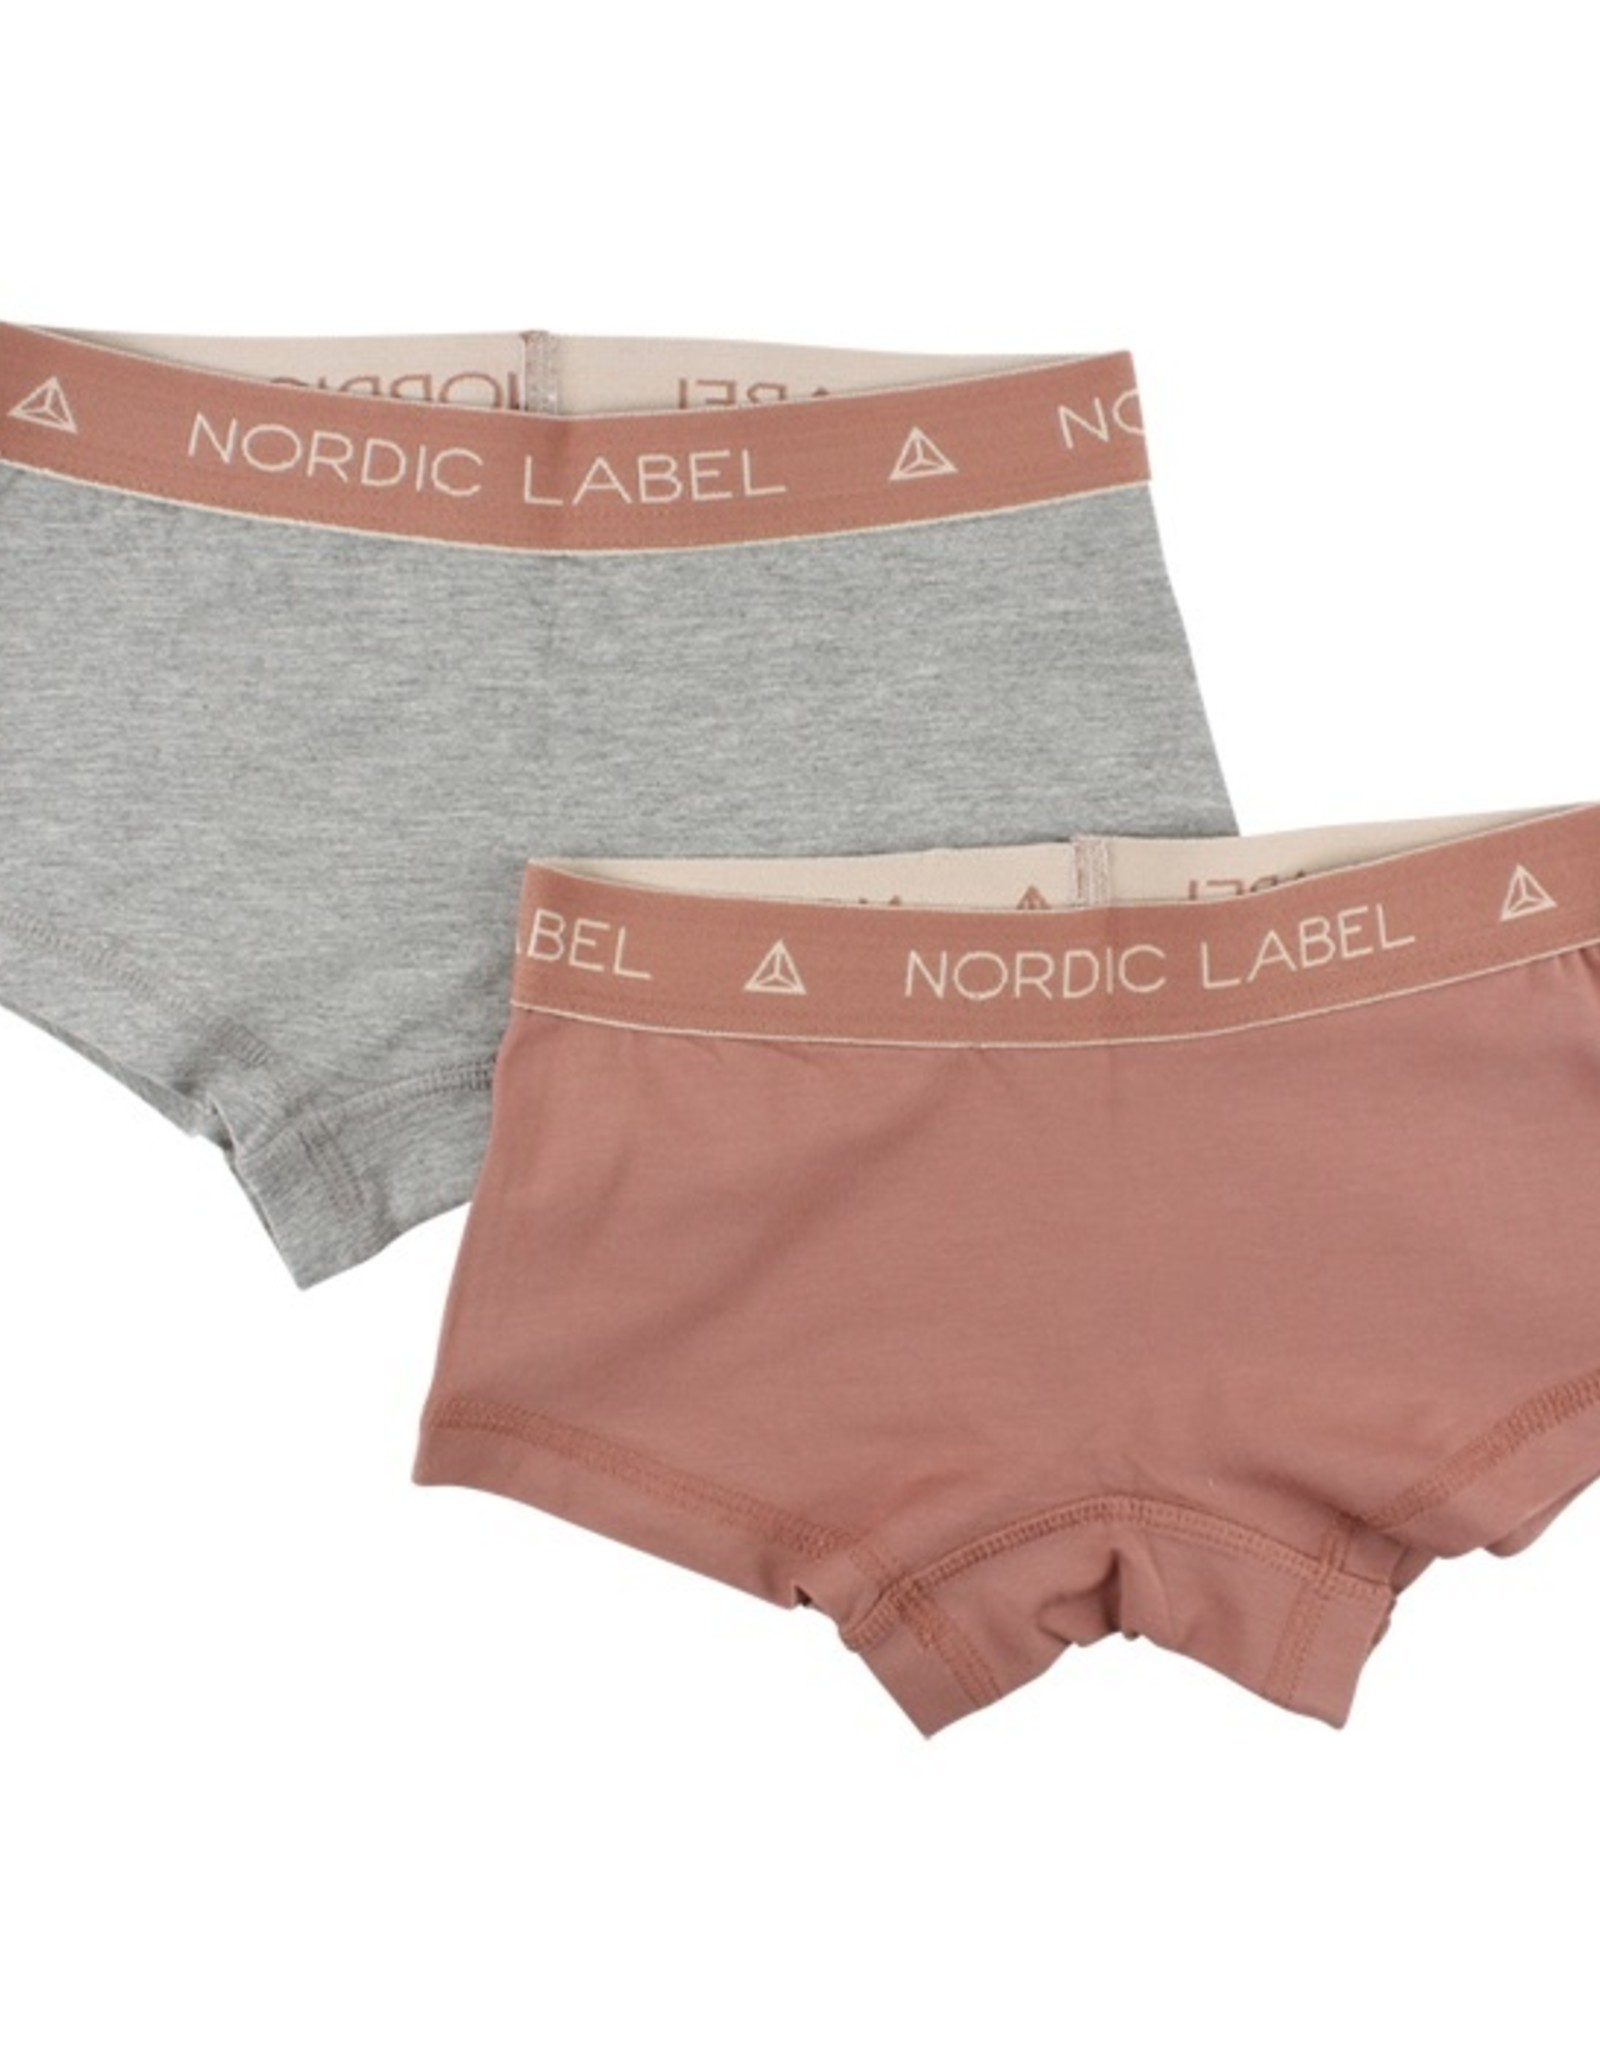 Nordic Label Nordic Label - Hipsters